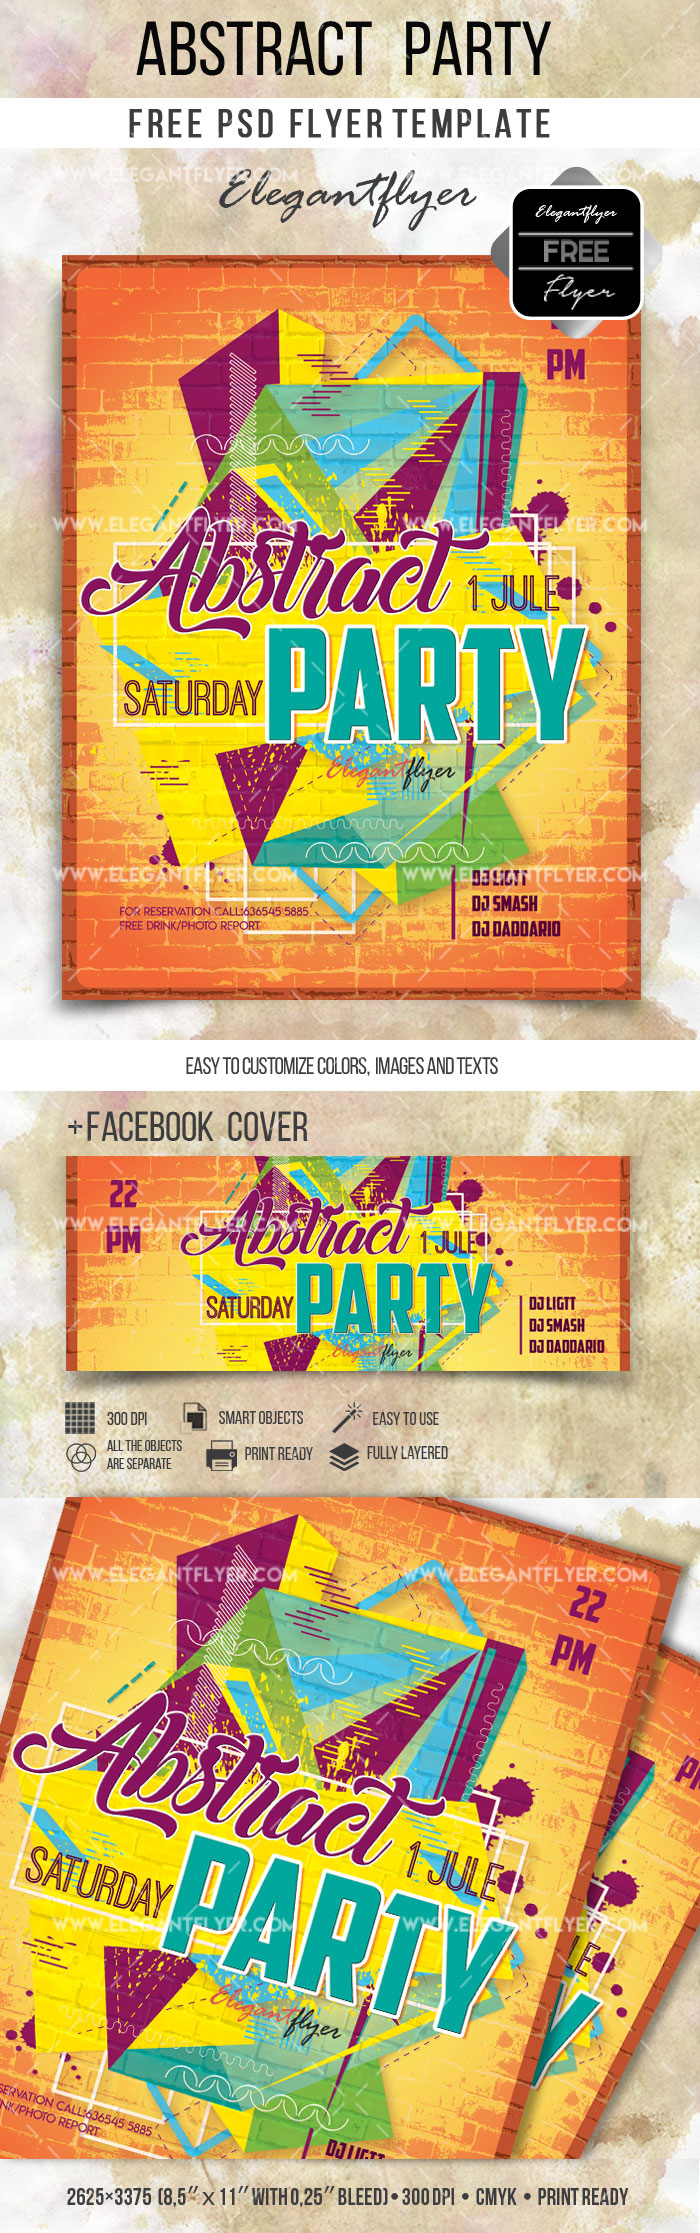 Abstract Party – Free Flyer PSD Template